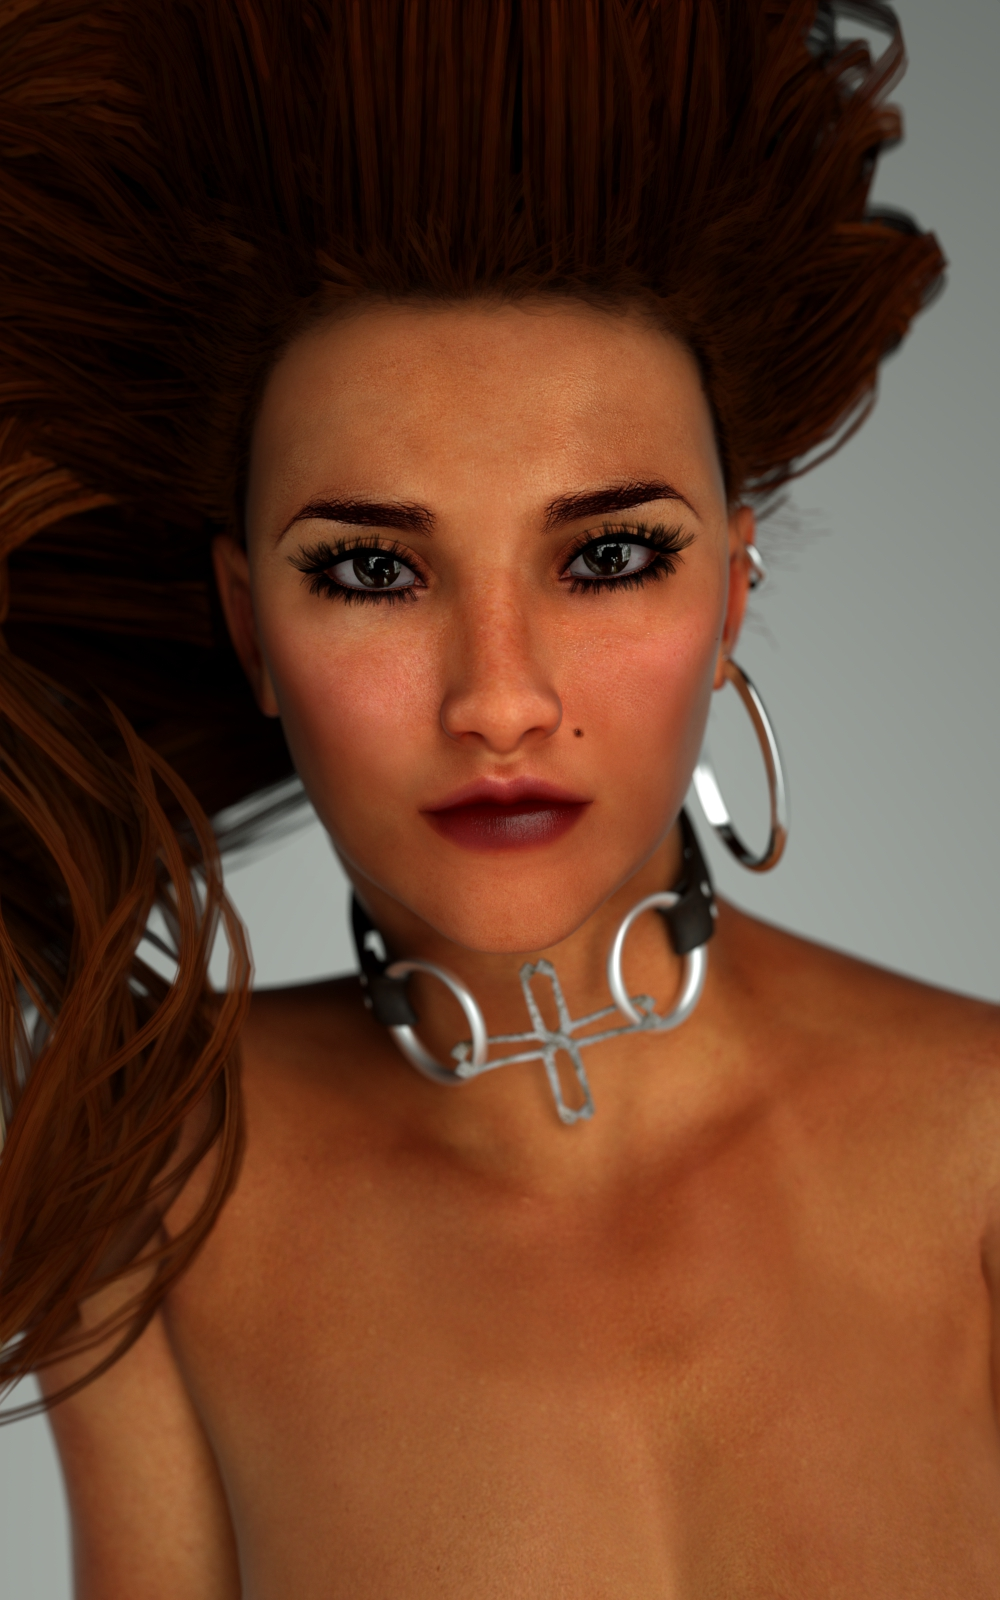 Federica by Tempesta3d